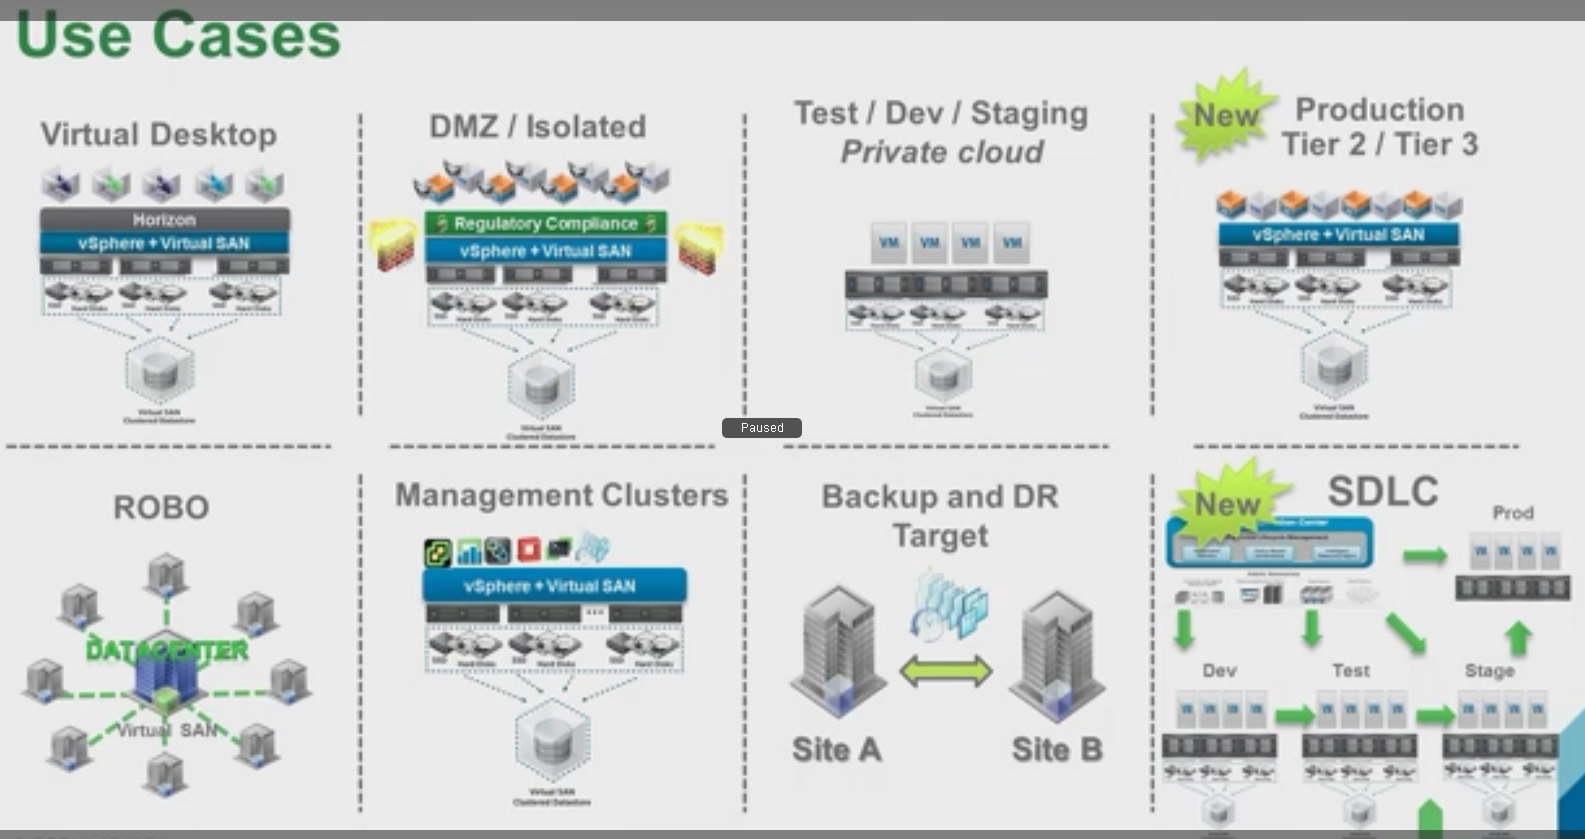 VMware Virtual SAN only Production Tier 2 and Tier 3 use cases